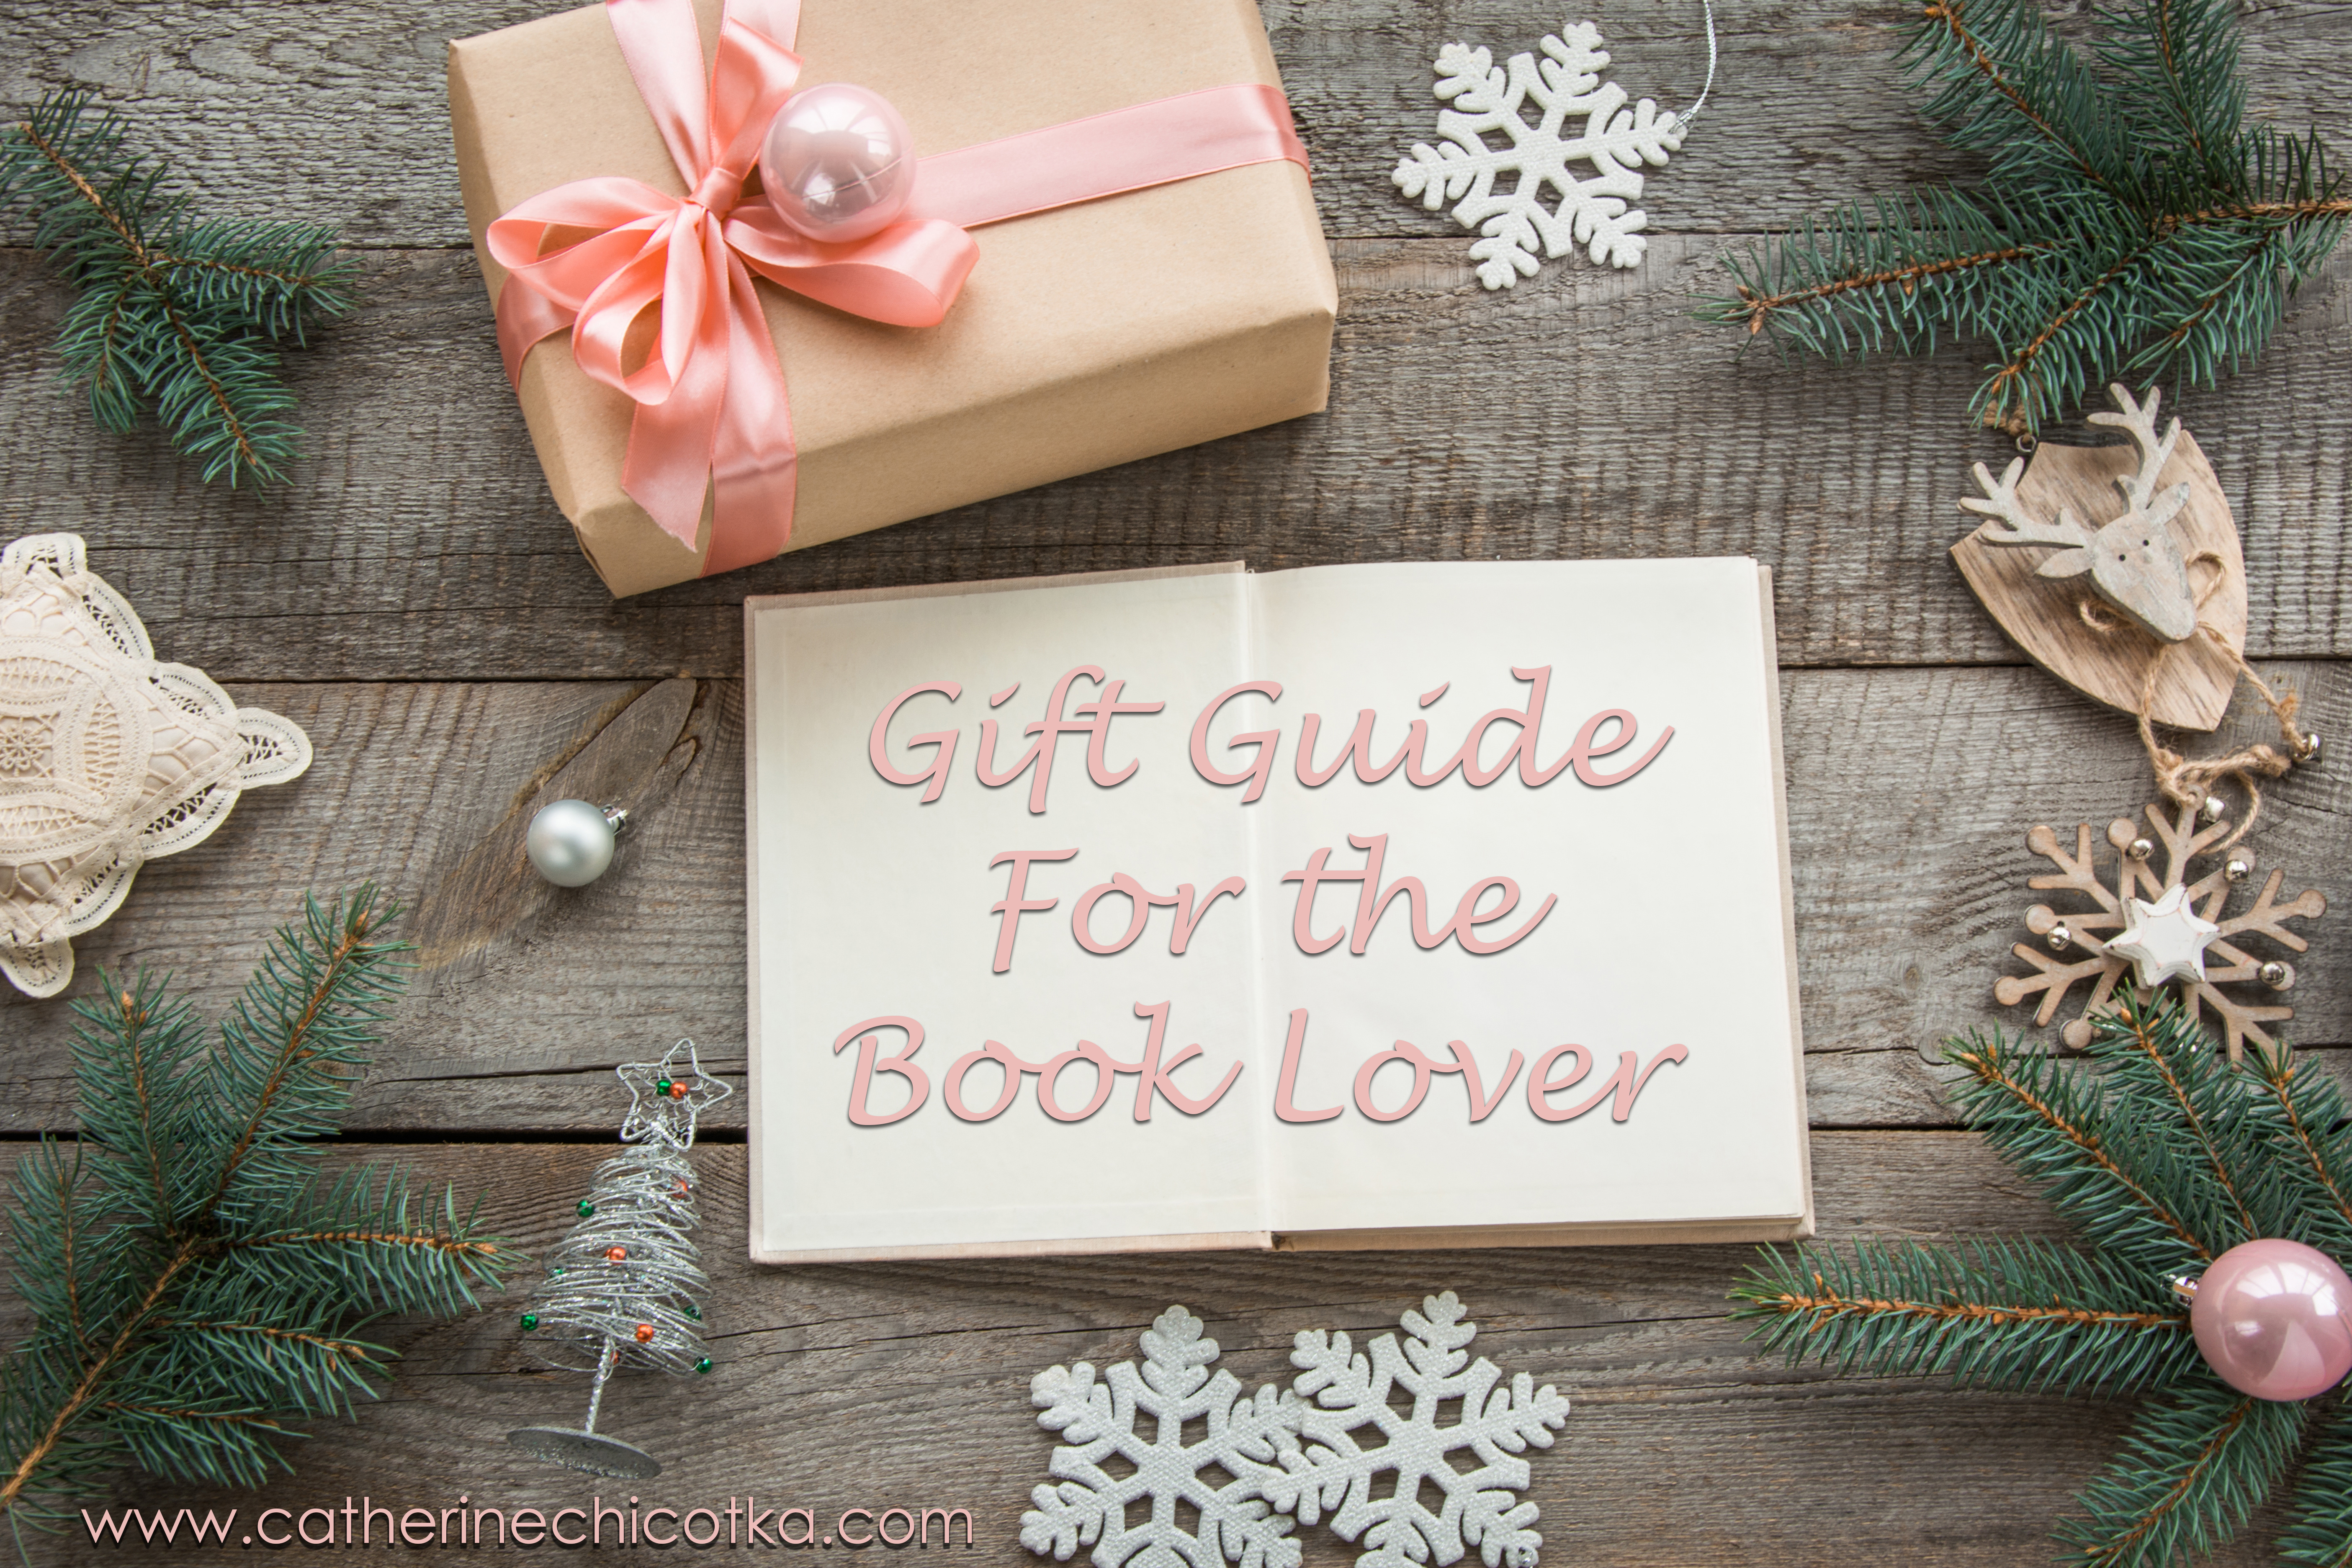 Gift Guide for the Book Lover